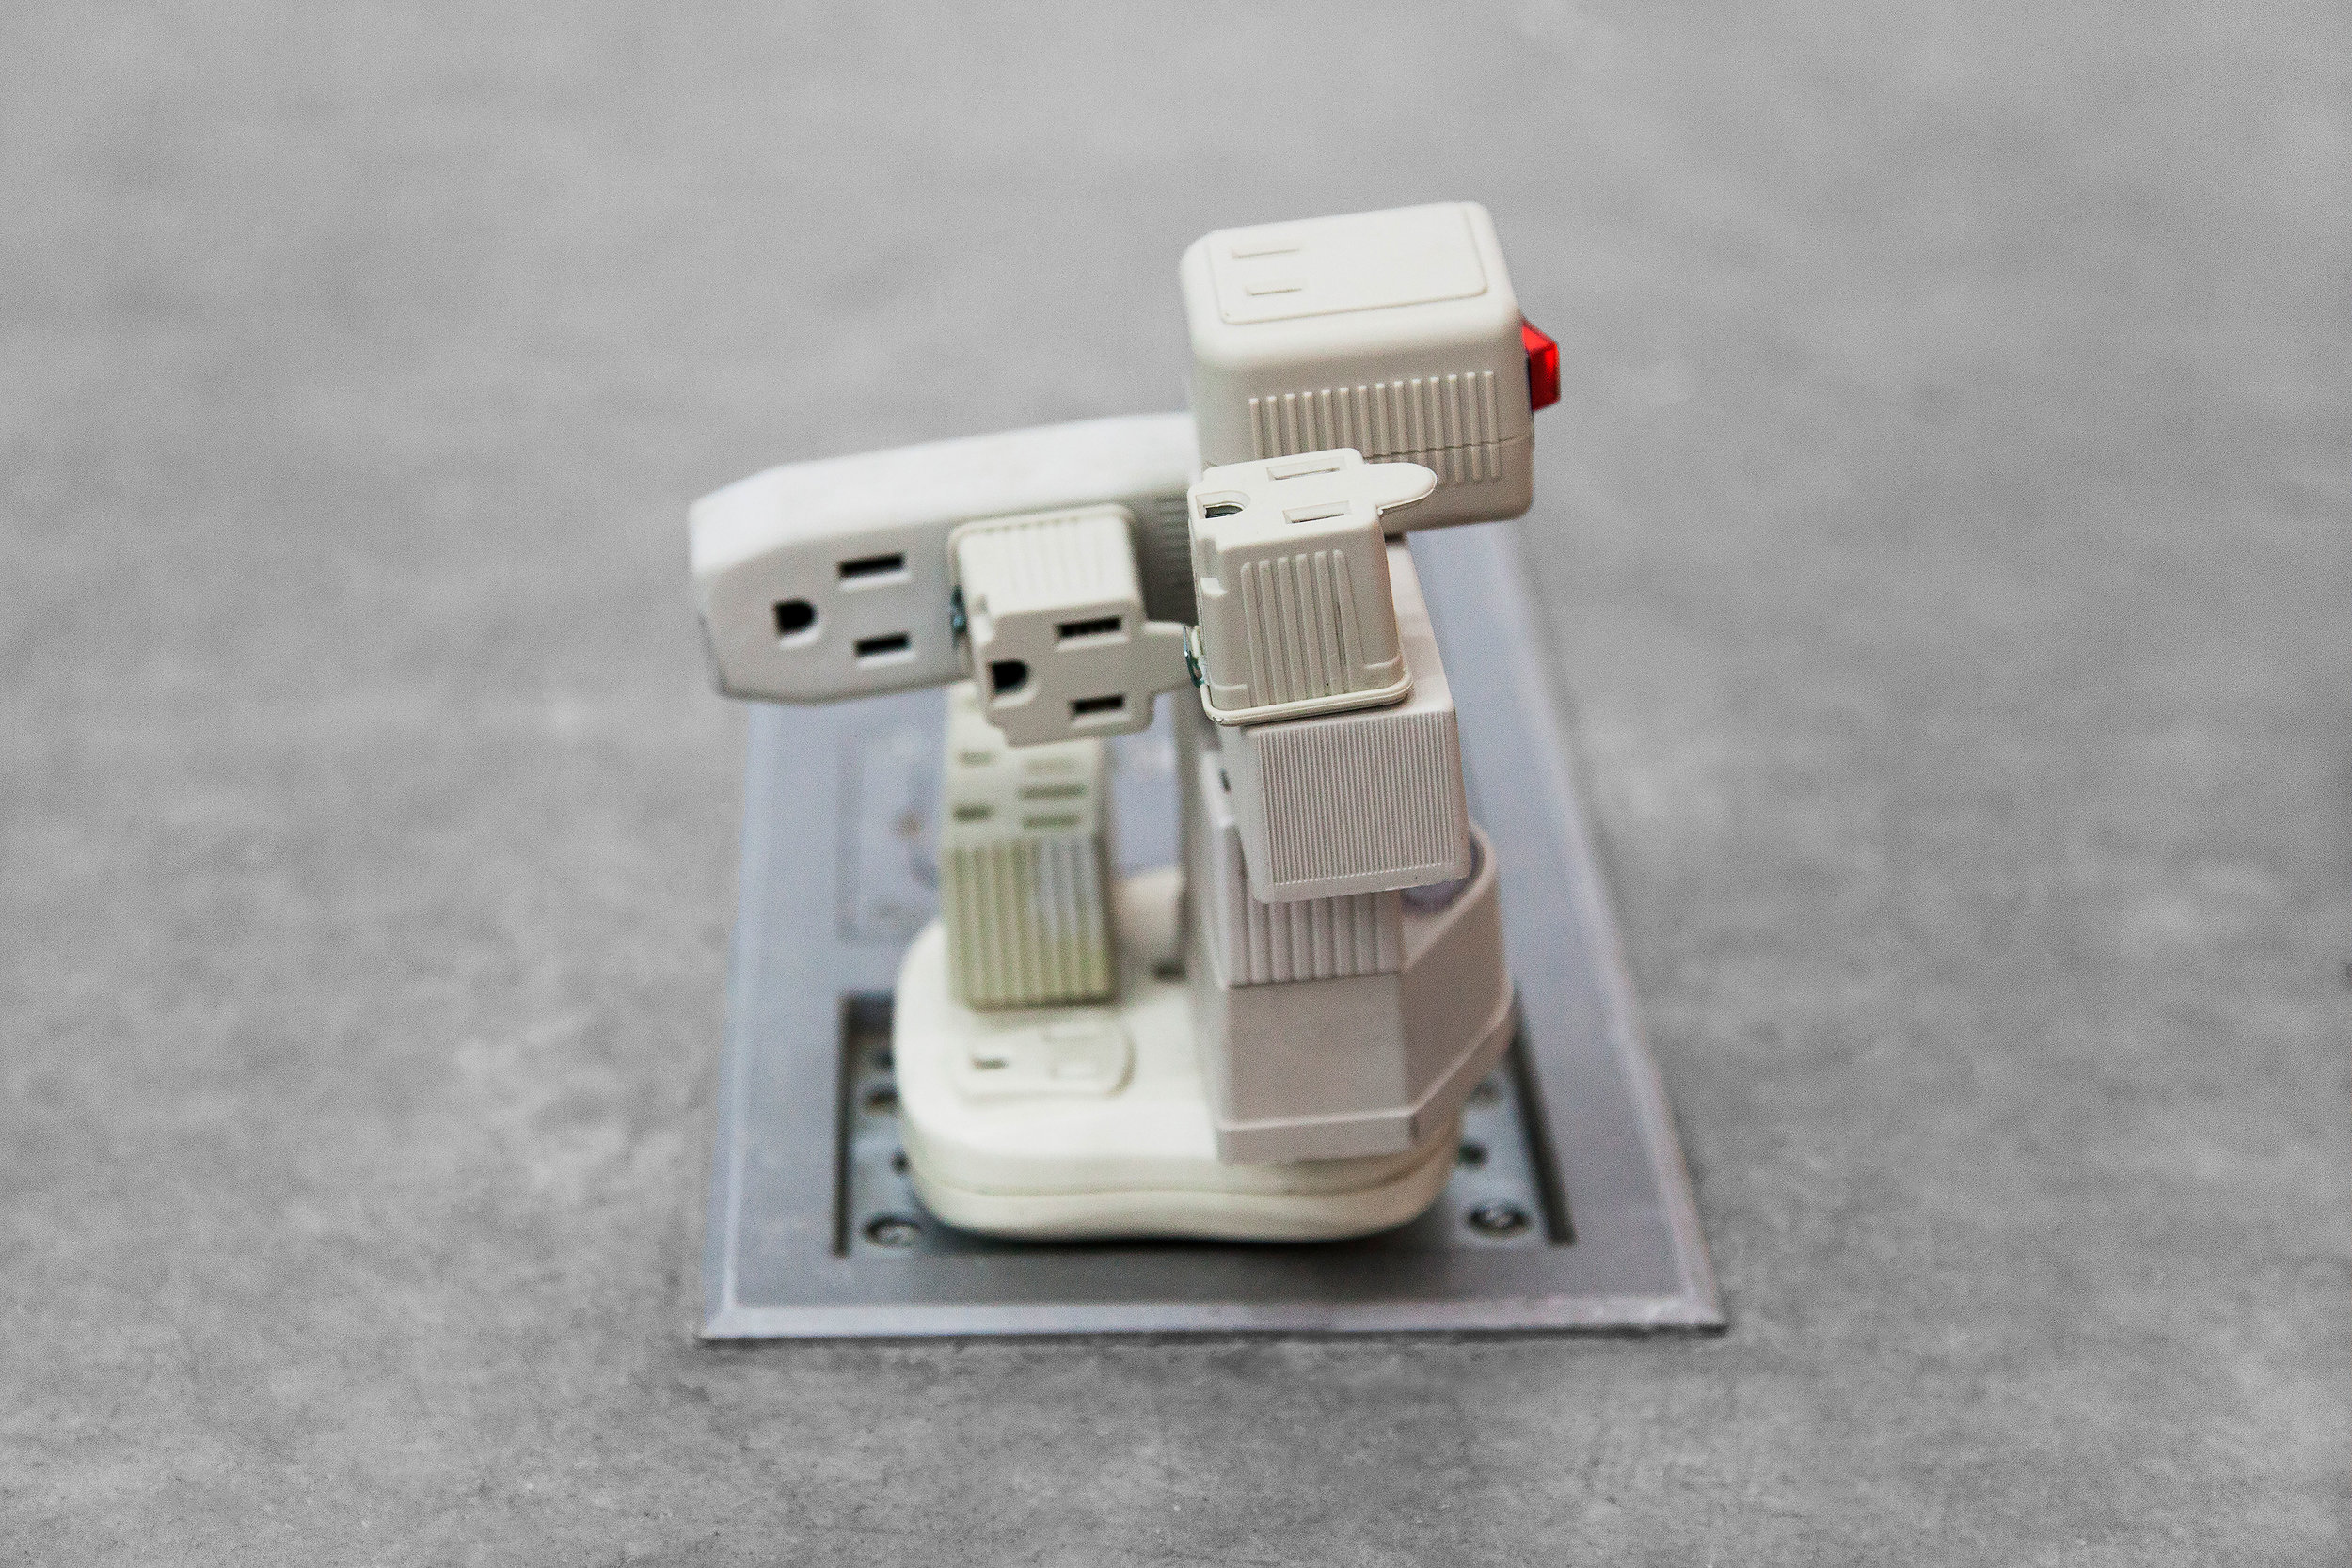 """Plugin Adapter , 2014, outlet adapters, 3""""x 3""""x 4"""" (7.6 cm x 7.6 cm x 10.2 cm)"""